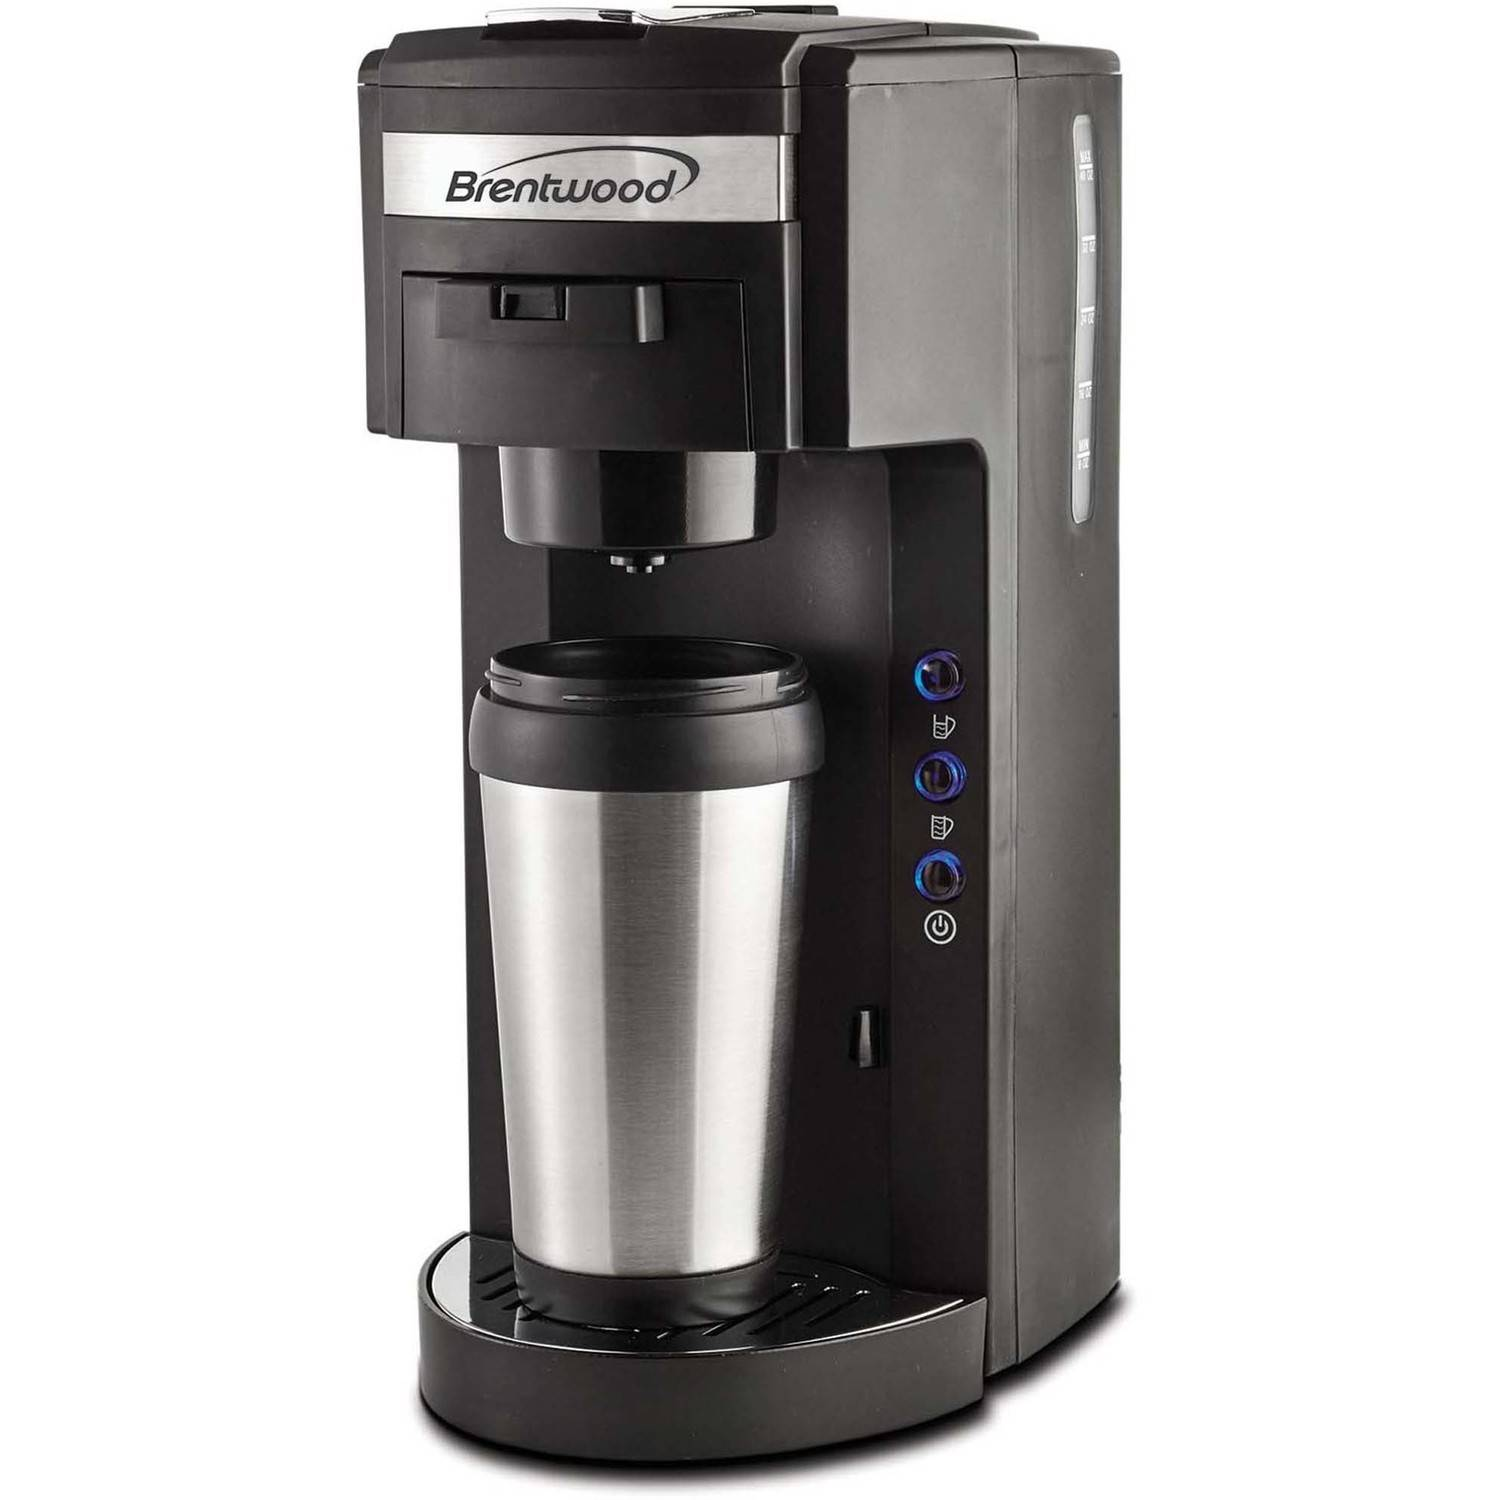 Brentwood Single Serve Coffee Maker, K-Cup Soft Pod Compatible, Black